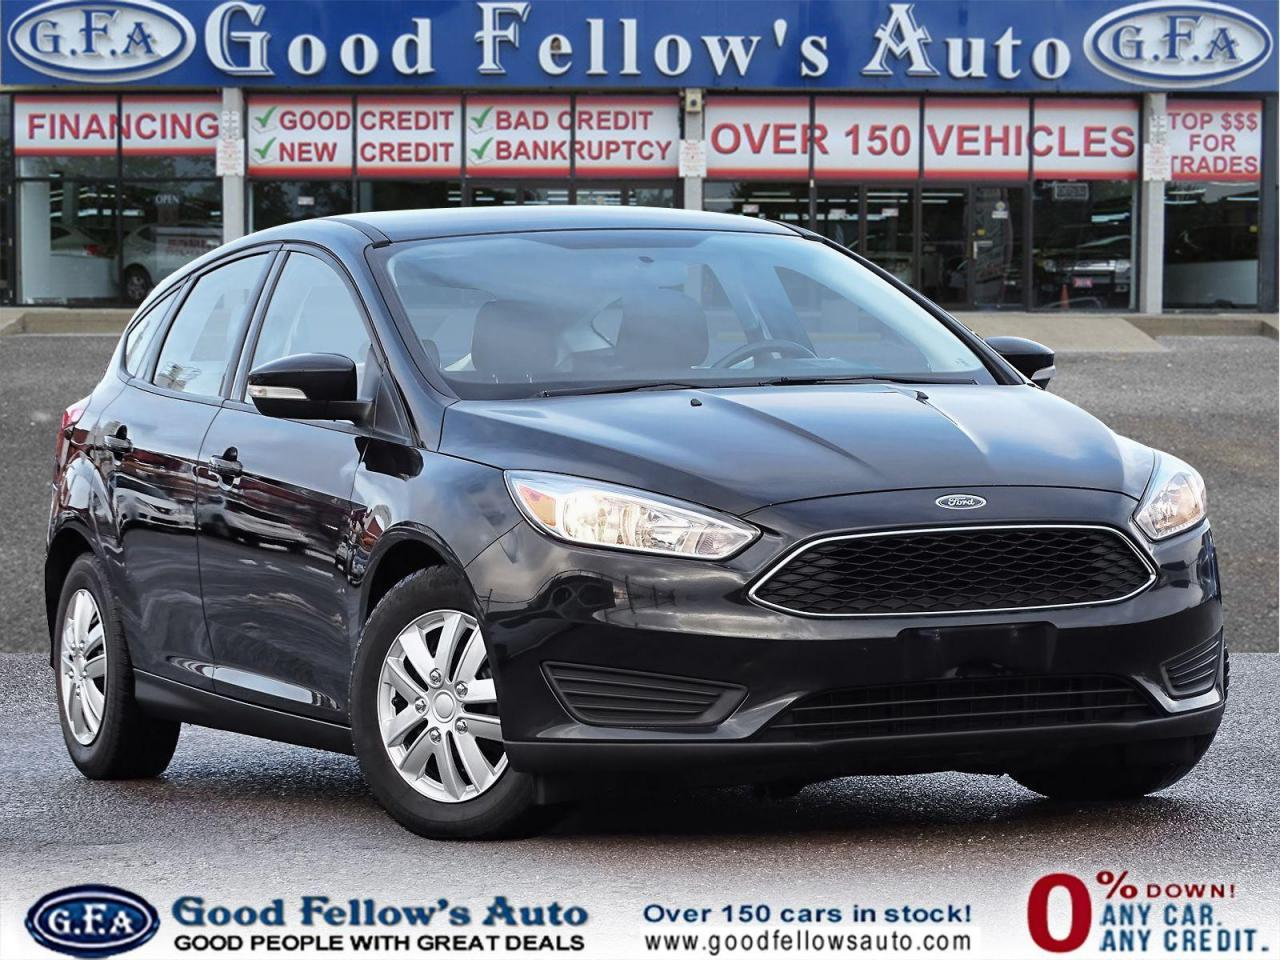 used 2016 Ford Focus car, priced at $9,500